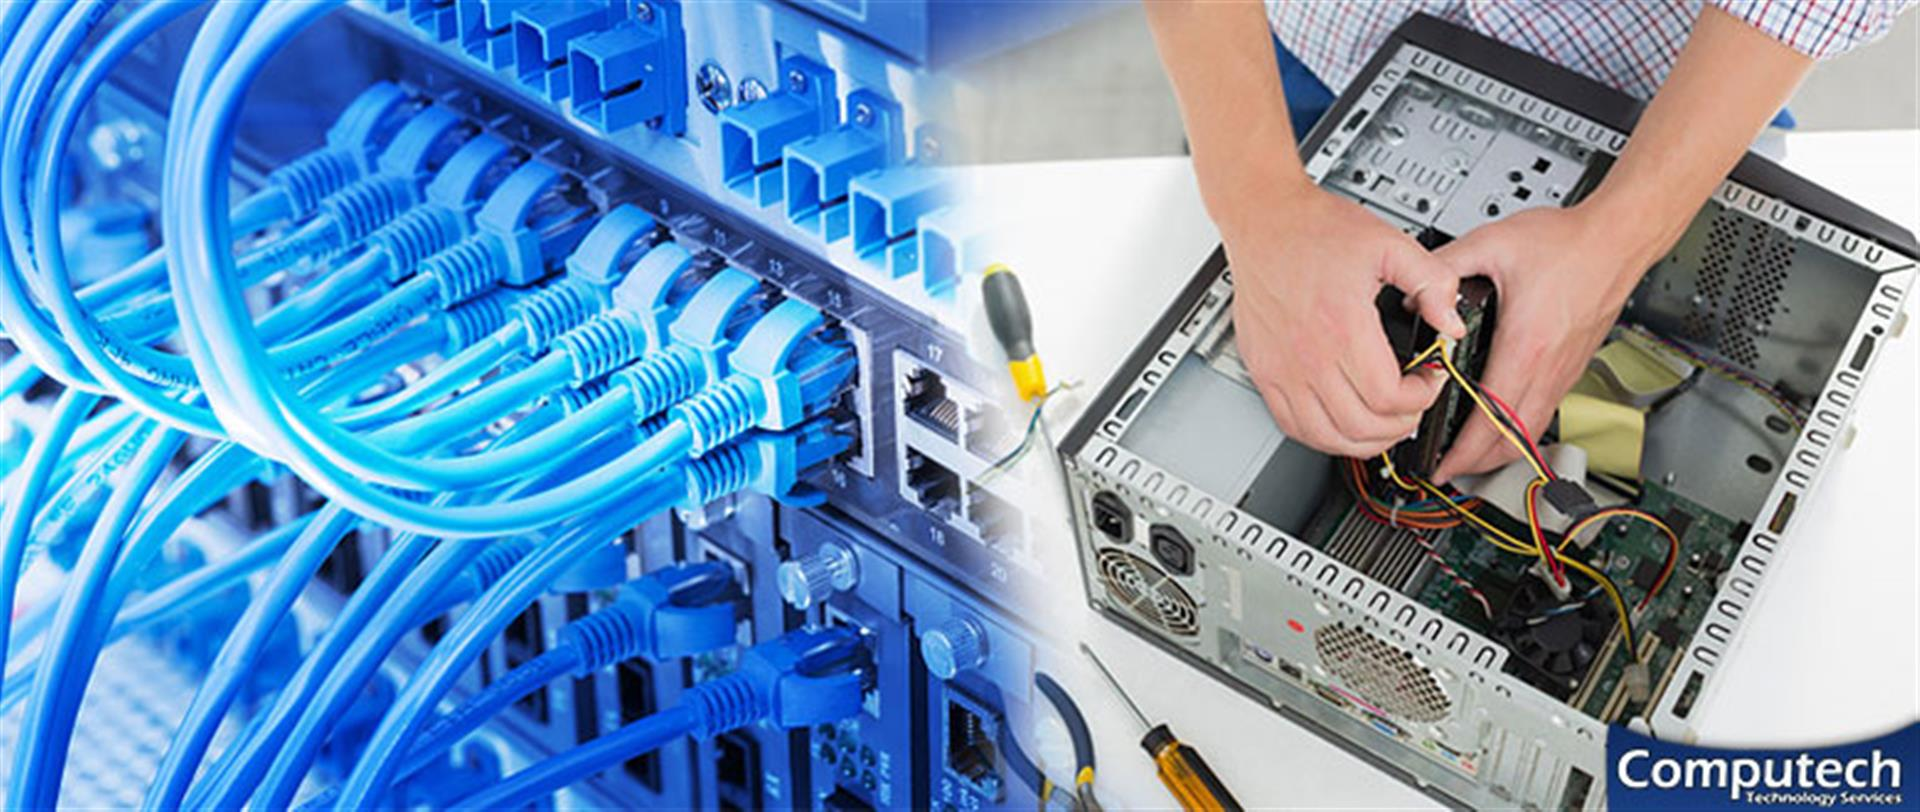 Fairfield Alabama Onsite Computer & Printer Repair, Networks, Voice & Data Wiring Solutions